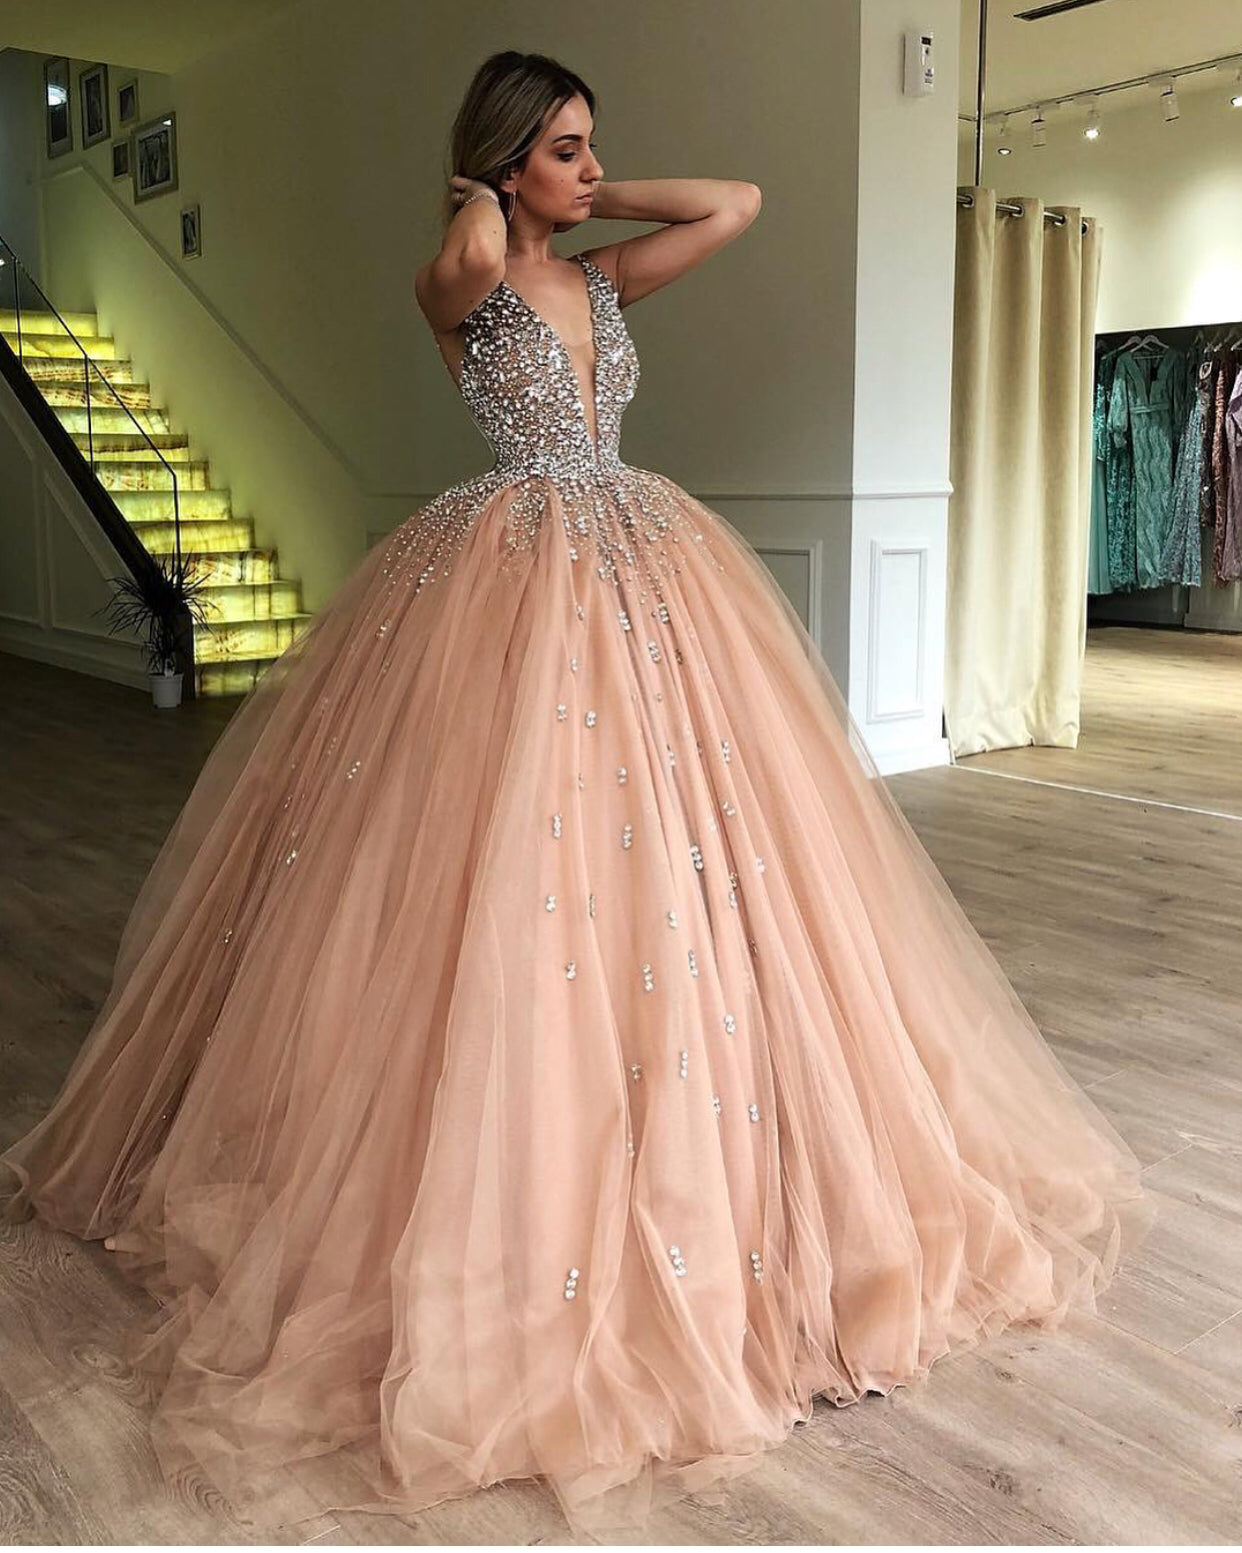 d751f5f240 Ball Gown Prom Dresses 2019 Luxury Crystals Beaded Champagne Prom Gown  Vestido De Novia ...